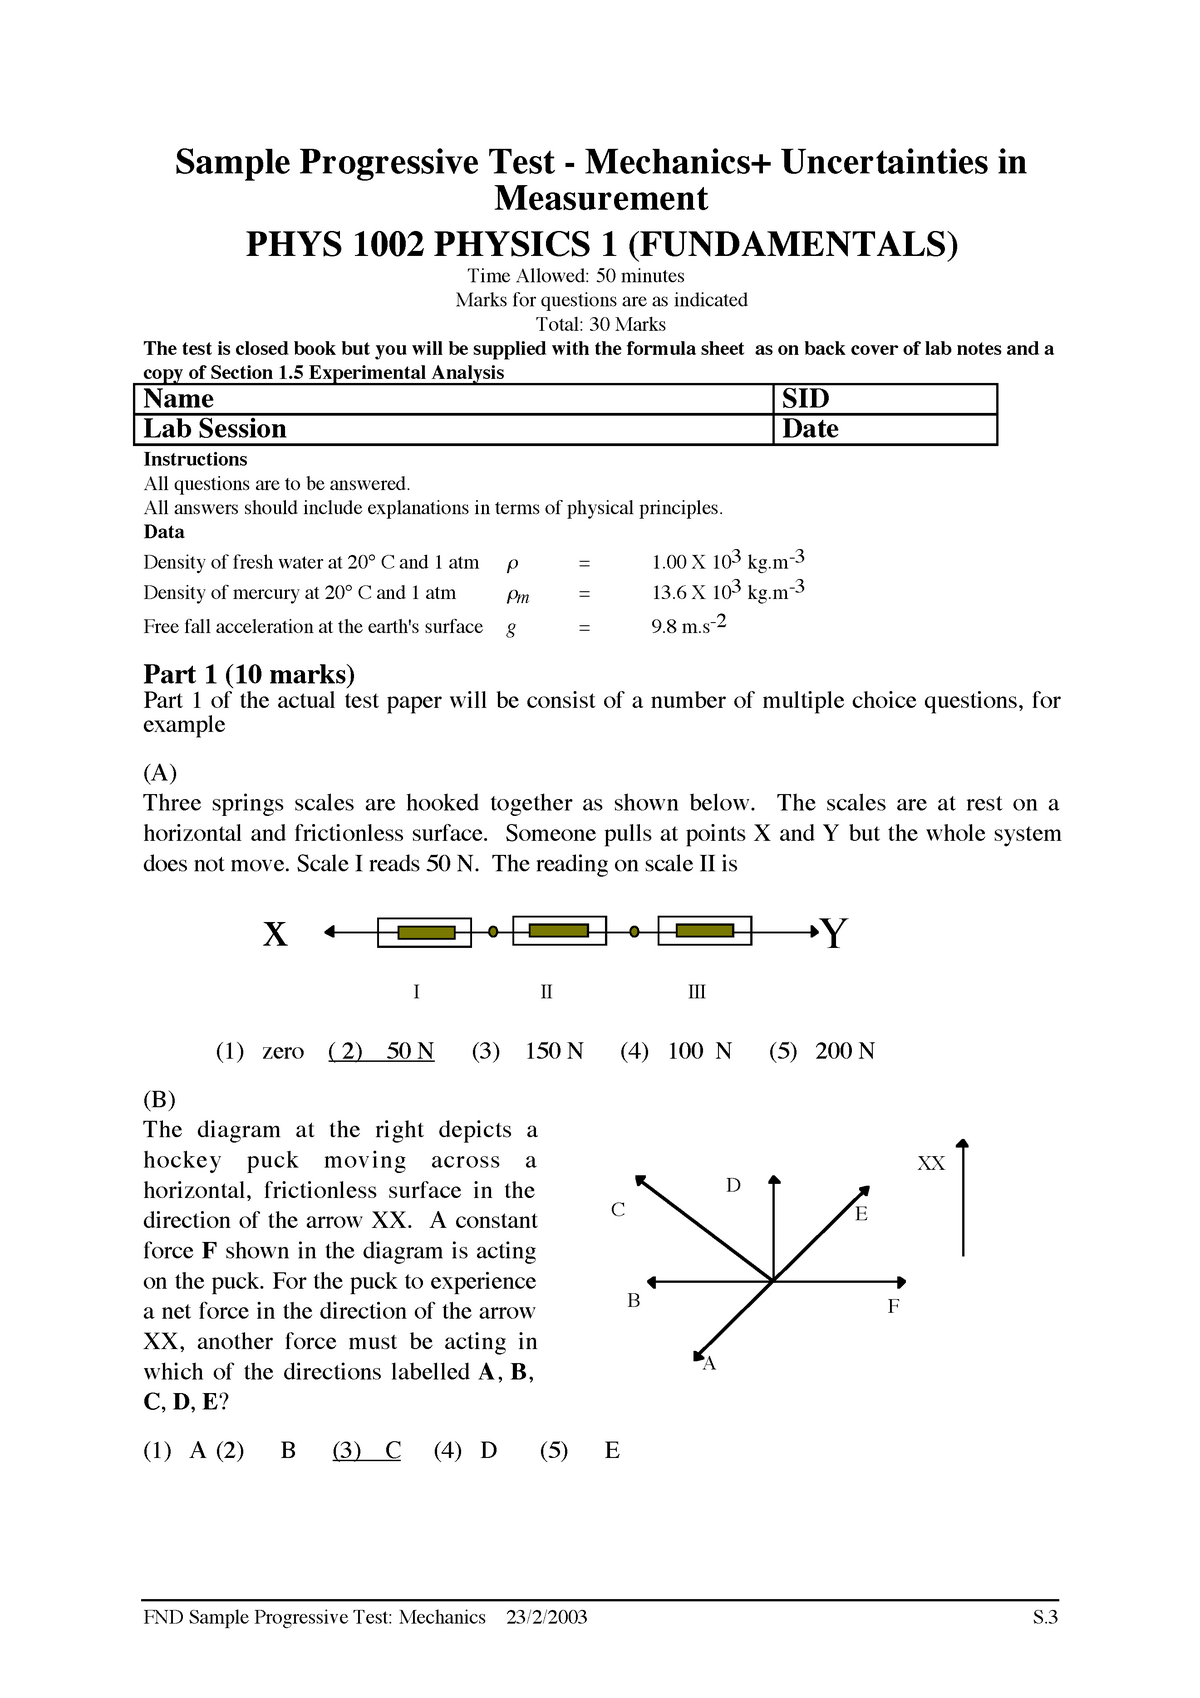 Practical - sample practical quiz with answers - PHYS1002